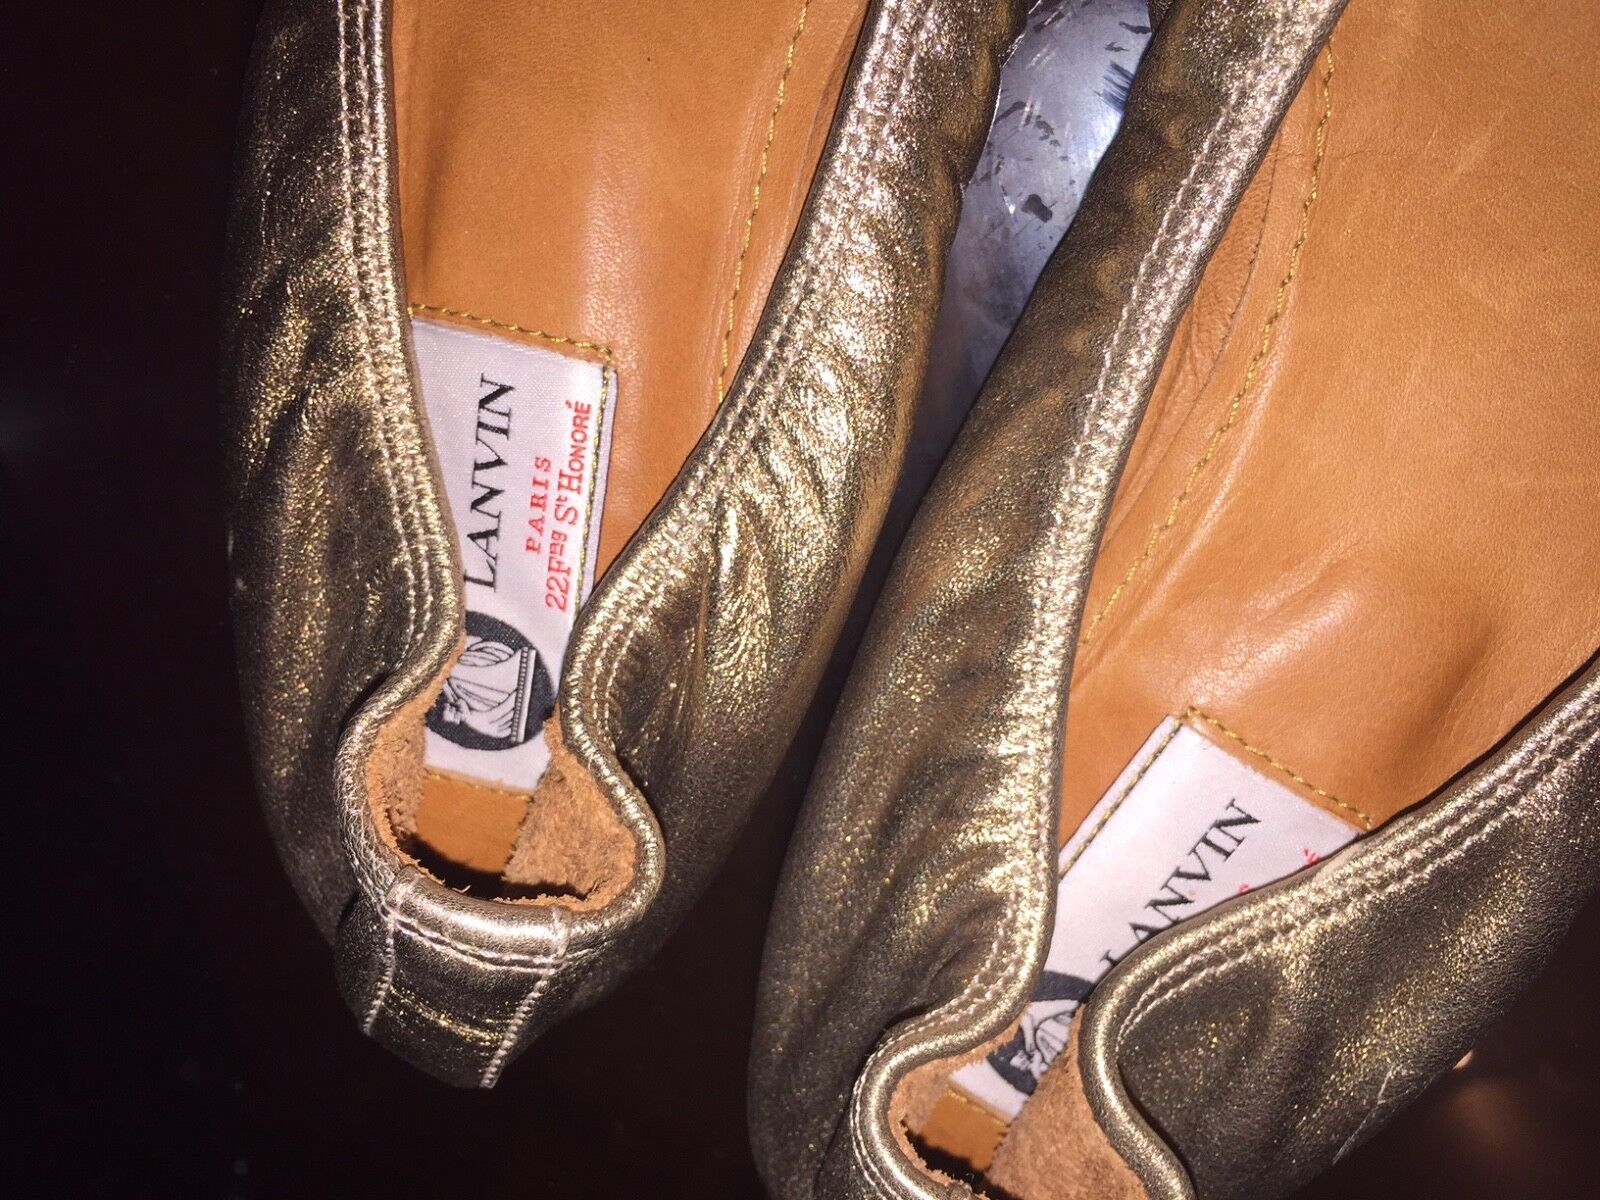 LANVIN METALLIC or SUPER SOFT LEATHER WEDGED FAMOUS BALLERINA FLATS FLATS FLATS WITH A BOW 842a01